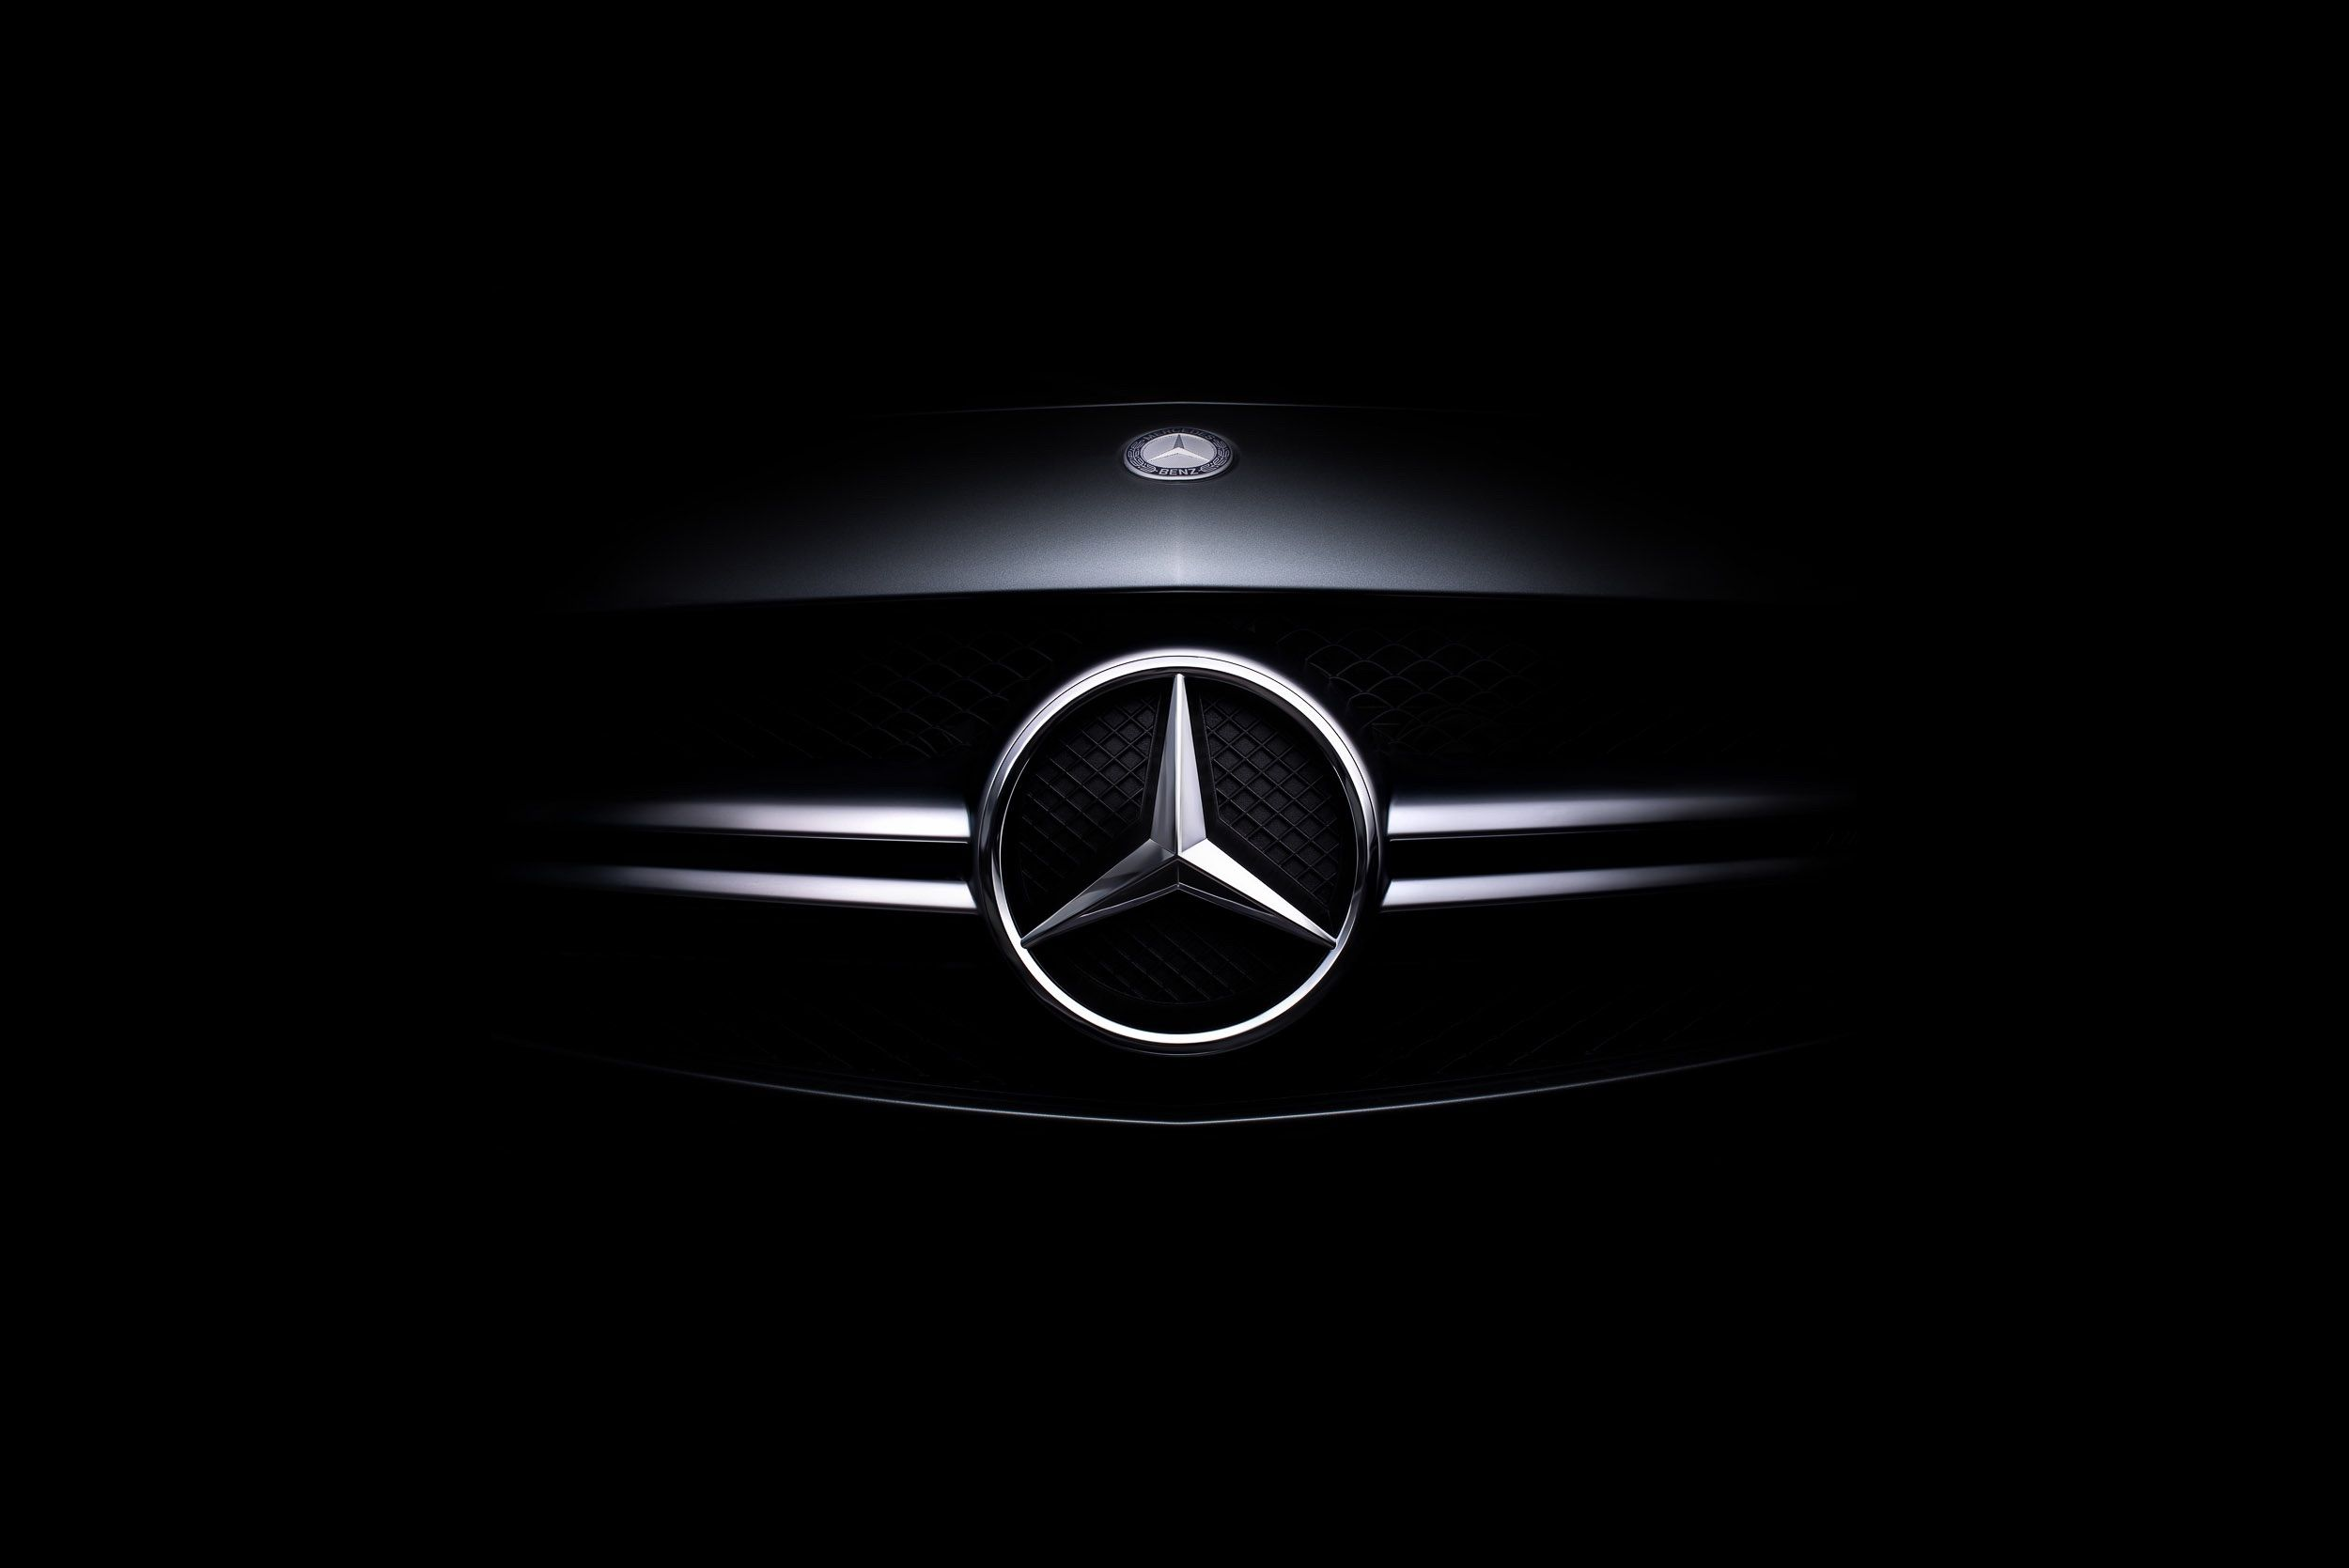 Pin By Lu Acosta On Coches With Images Mercedes Car Mercedes